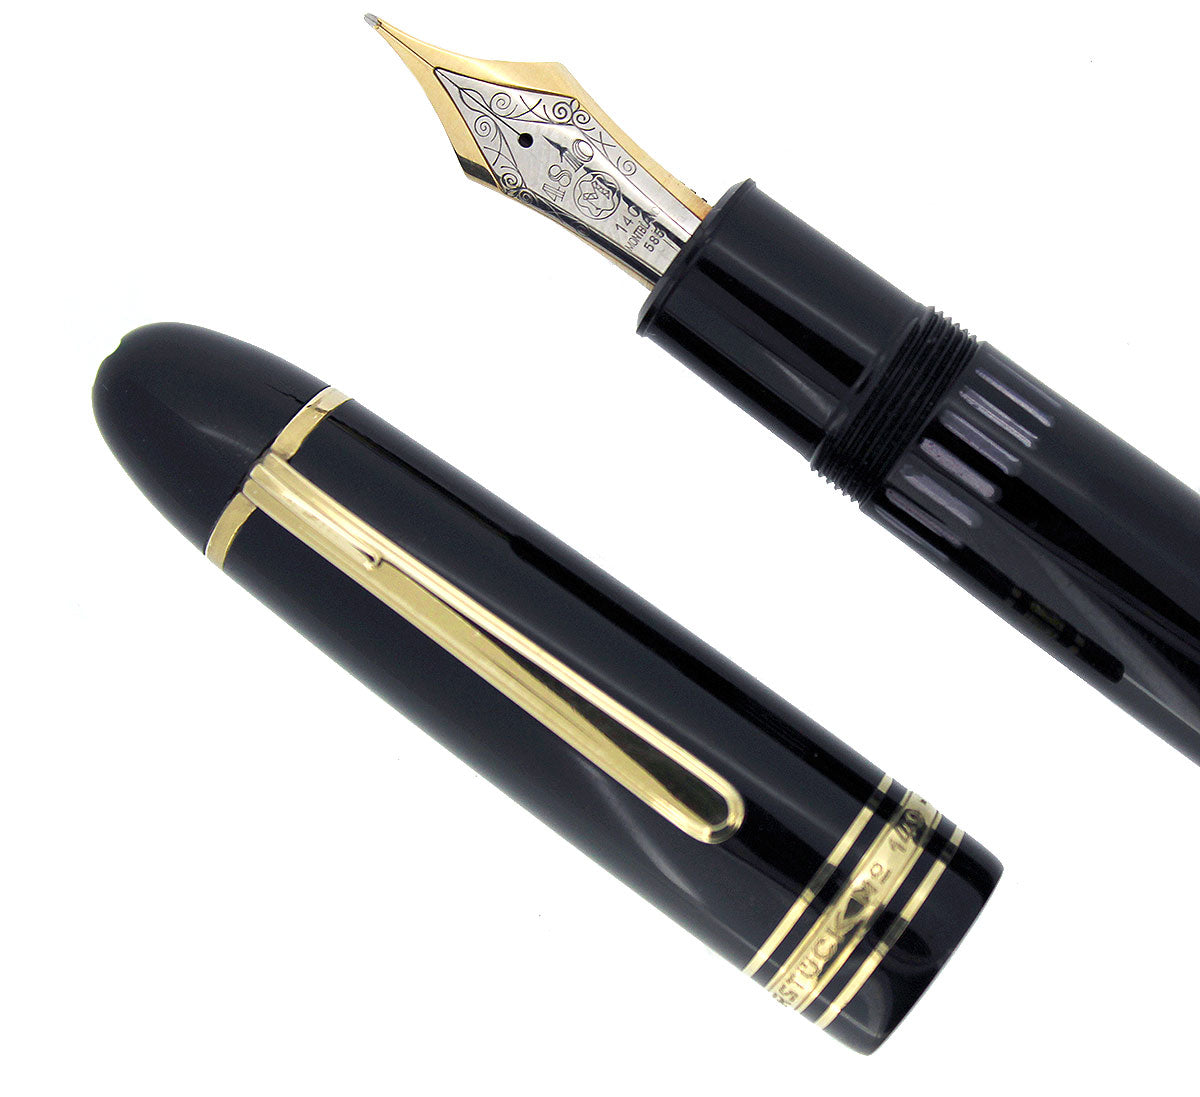 GORGEOUS CIRCA 1985 MONTBLANC MEISTERSTUCK N°149 FOUNTAIN PEN 14K NIB GERMANY OFFERED BY ANTIQUE DIGGER